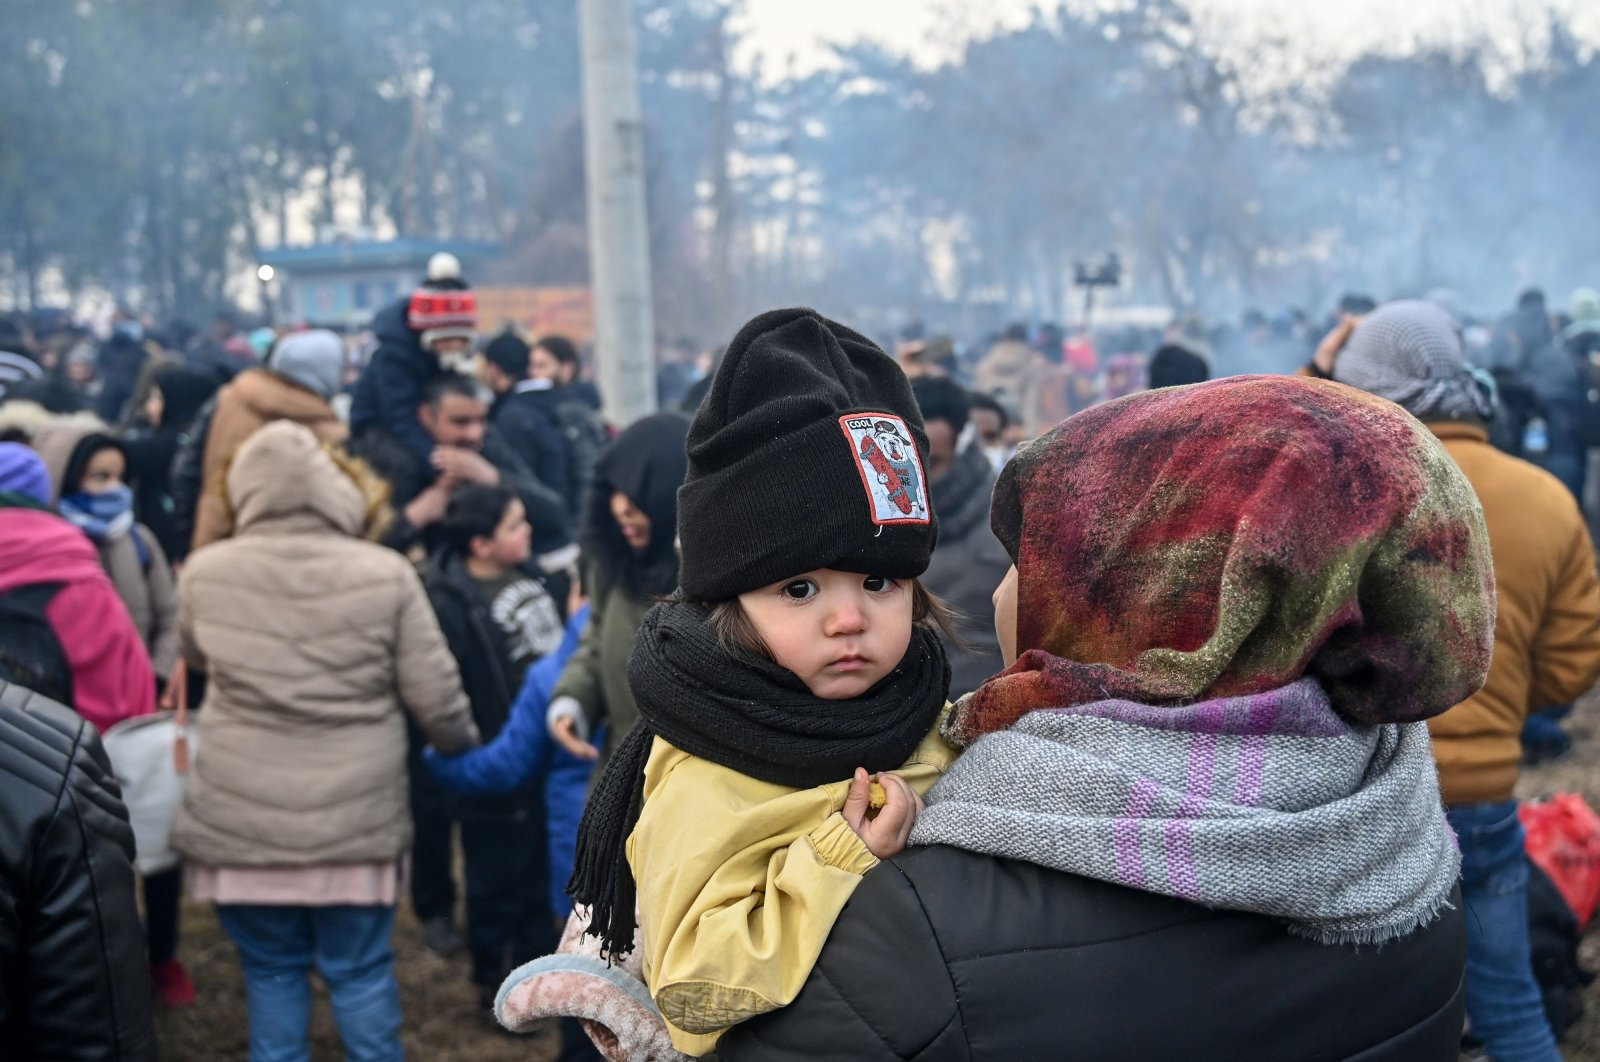 A child looks on as migrants wait to pass the buffer zone at the Turkey-Greece border, Pazarkule, Edirne province, Turkey, Feb. 29, 2020. (AFP Photo)